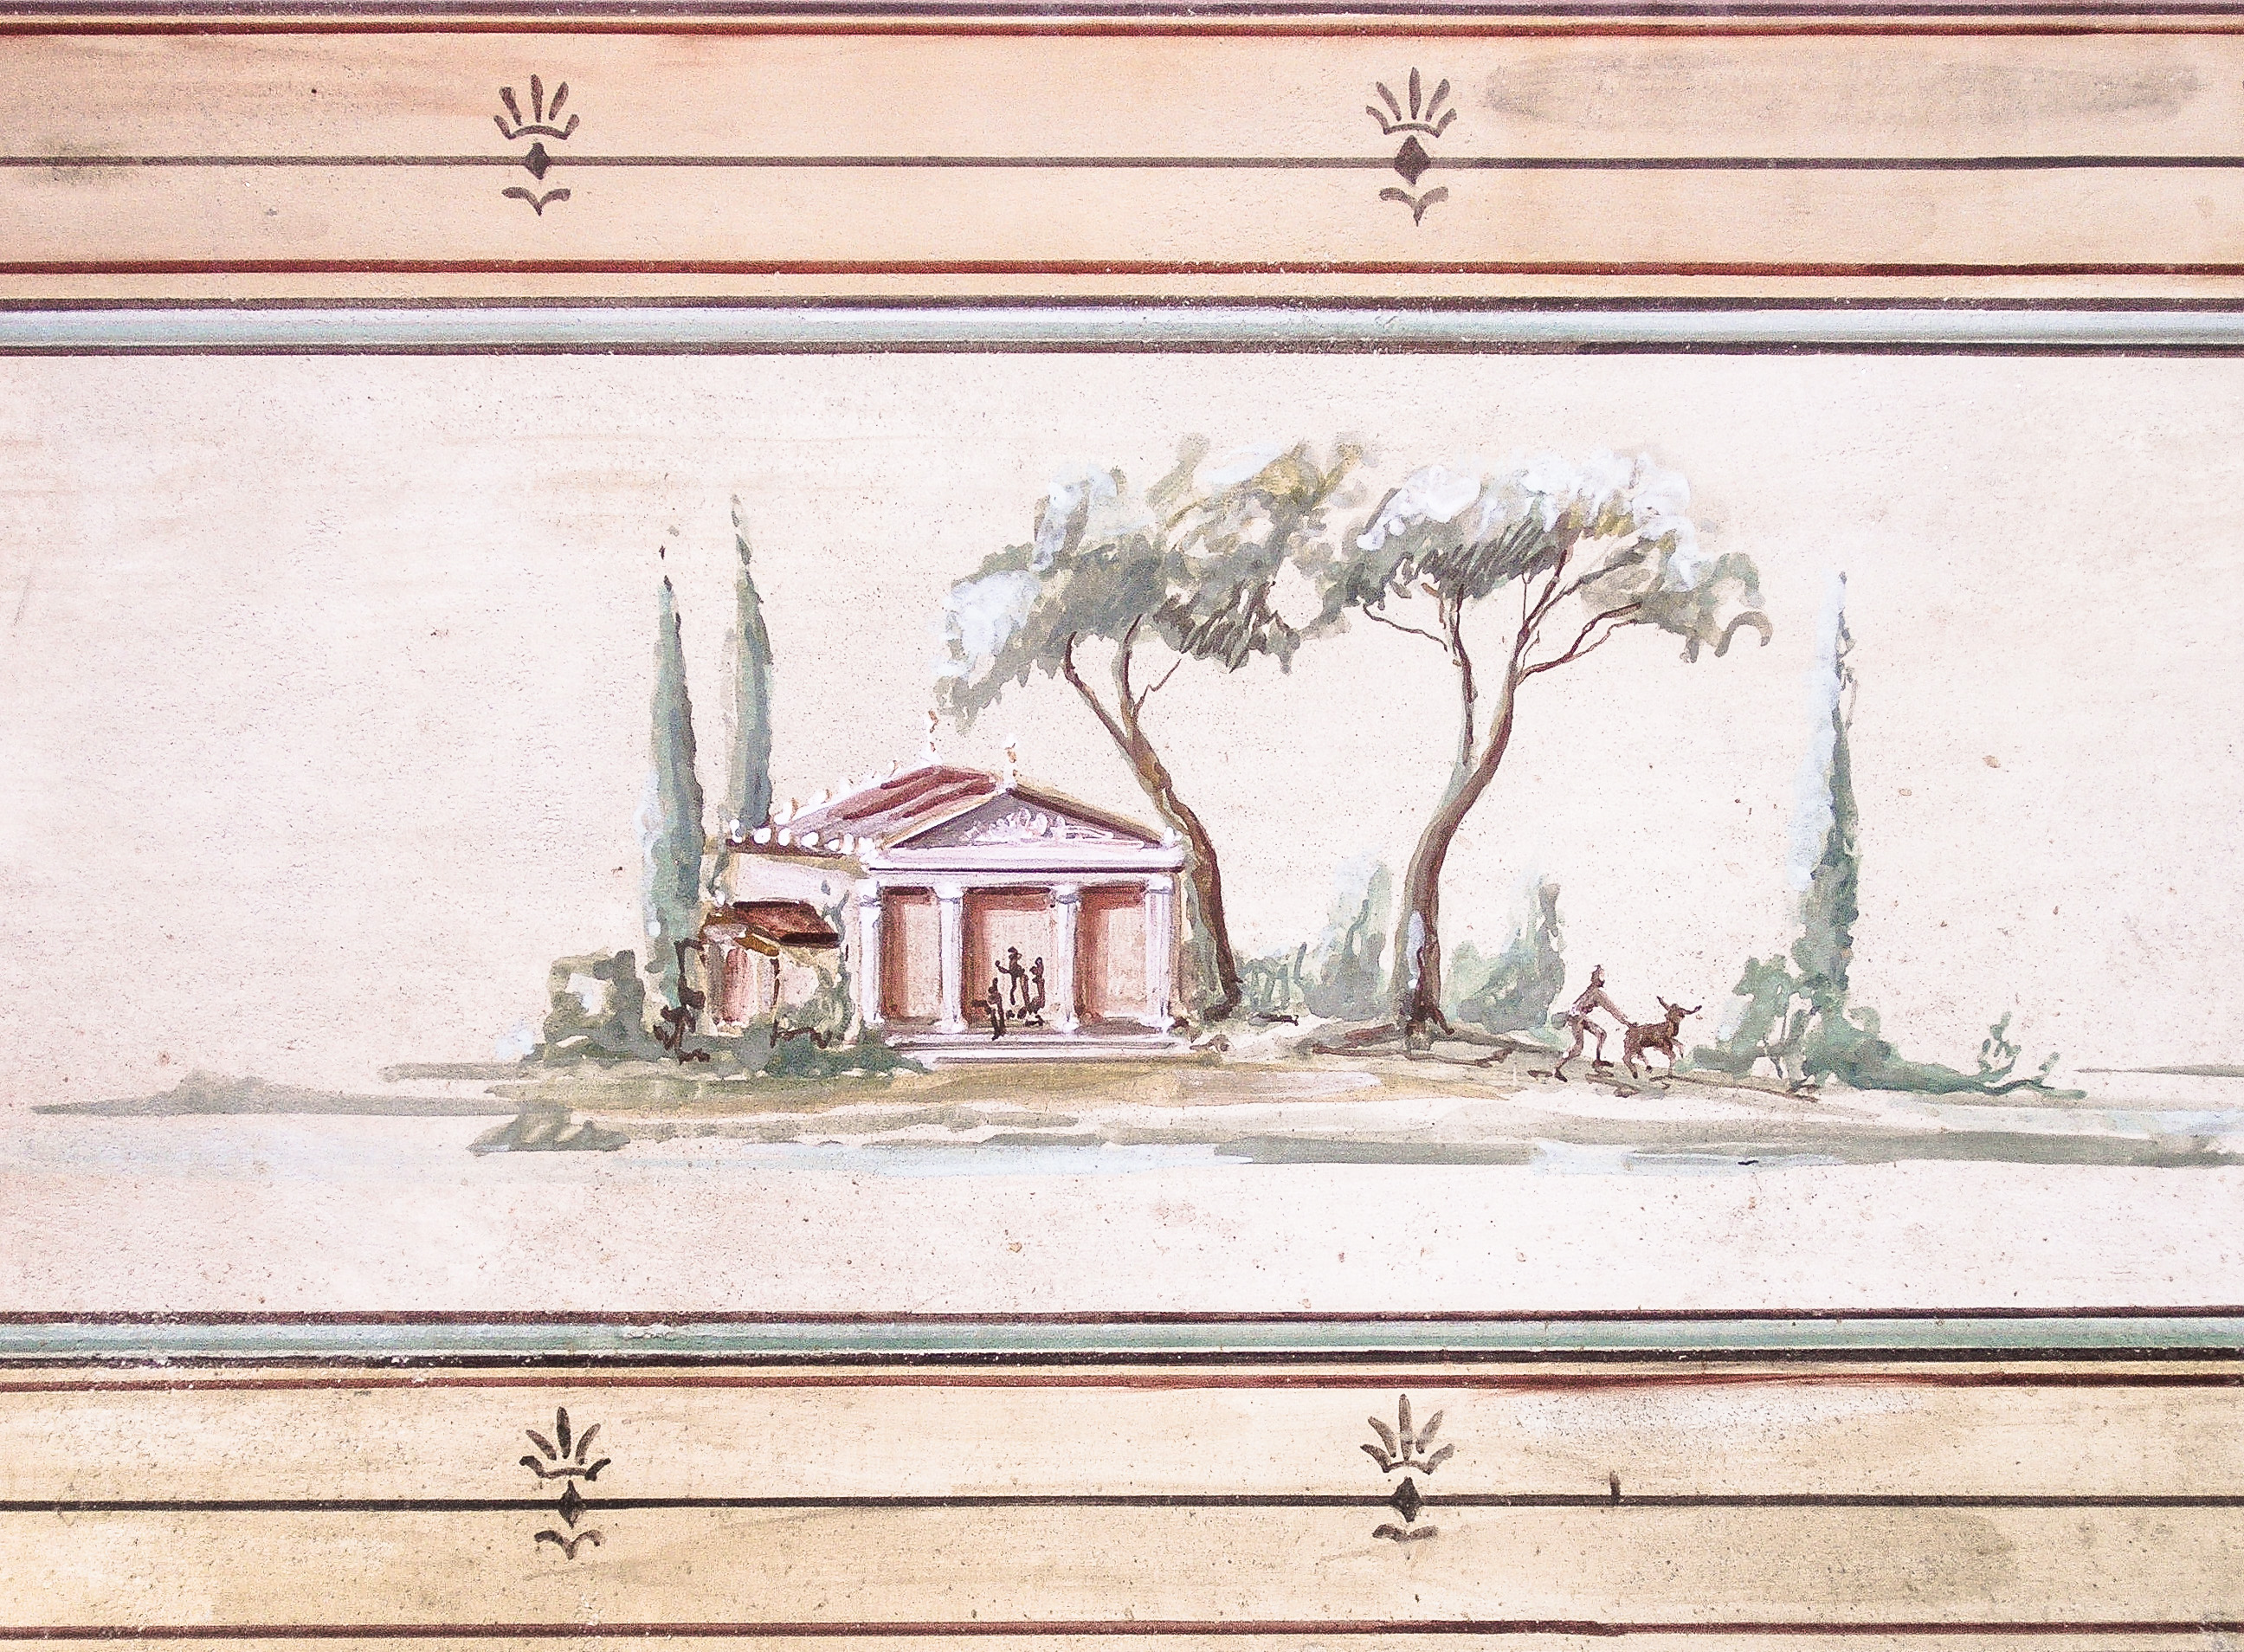 Pompeian landscape mural - Alexander Hamilton - Decorative Painter - London